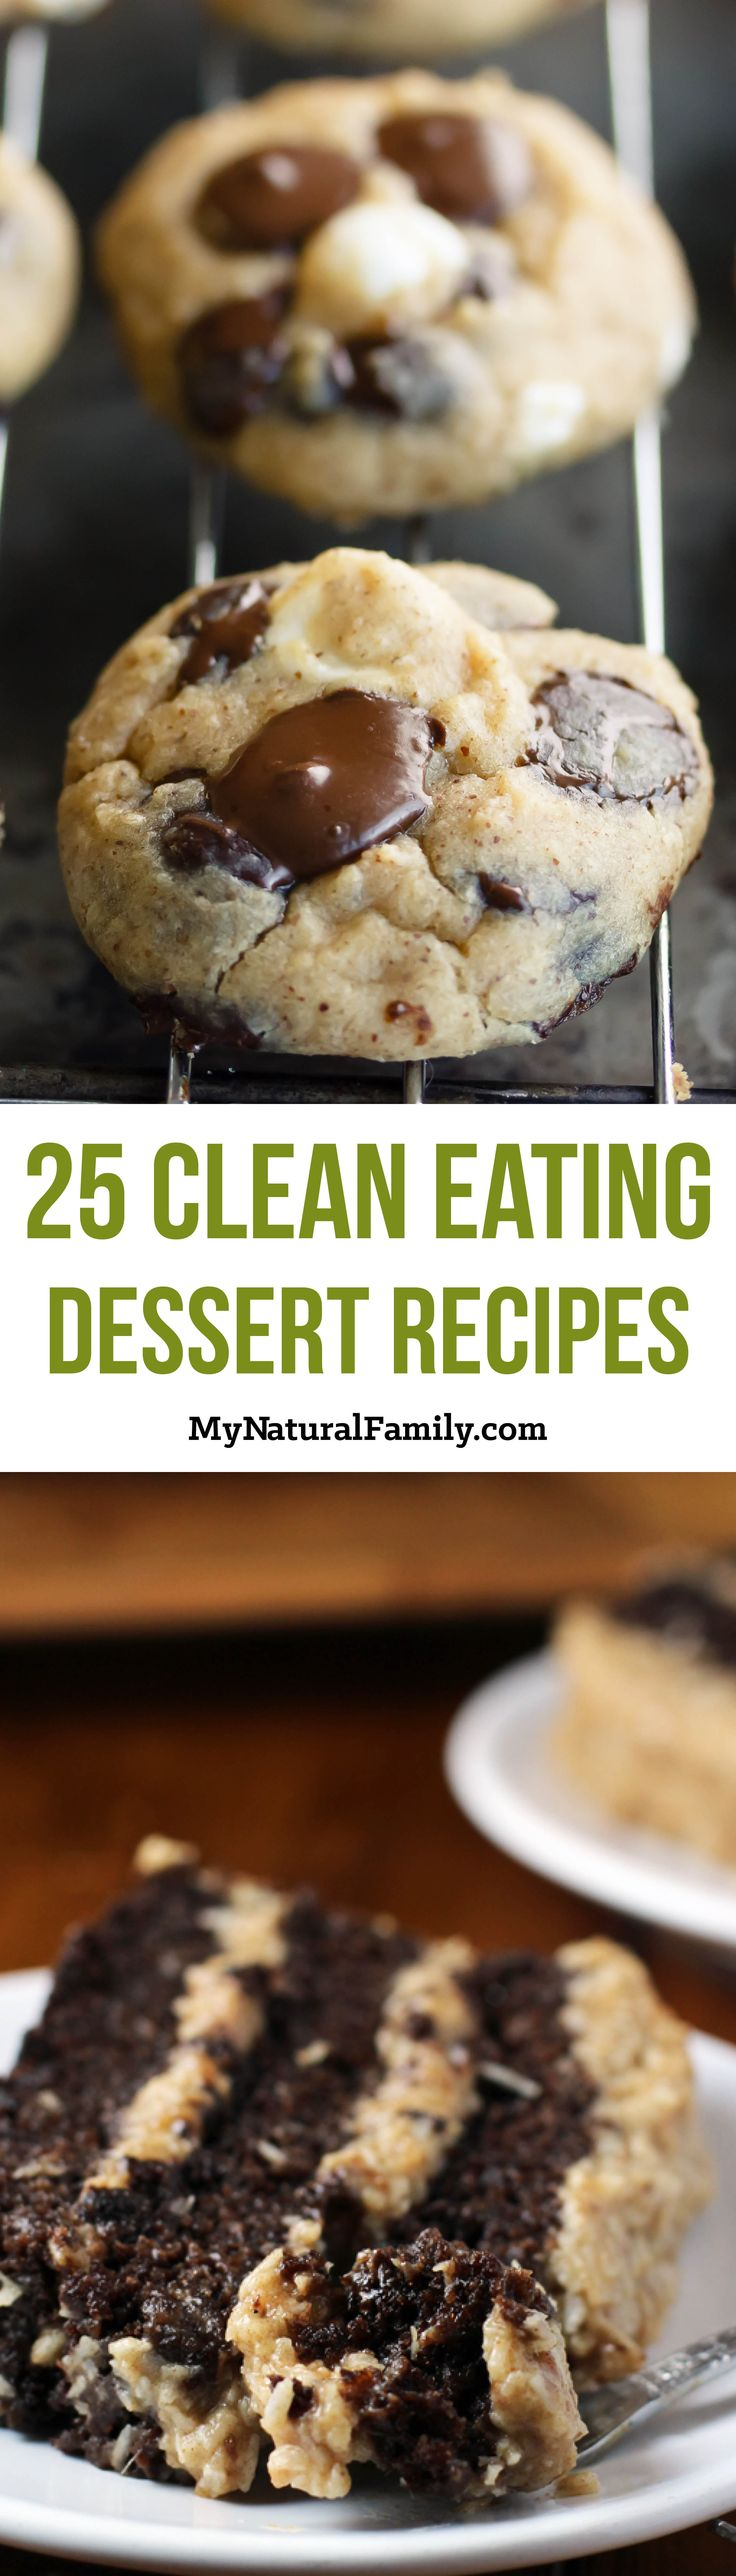 25 Clean Eating Dessert Recipes. I love how there is an image and a link to get each recipe.